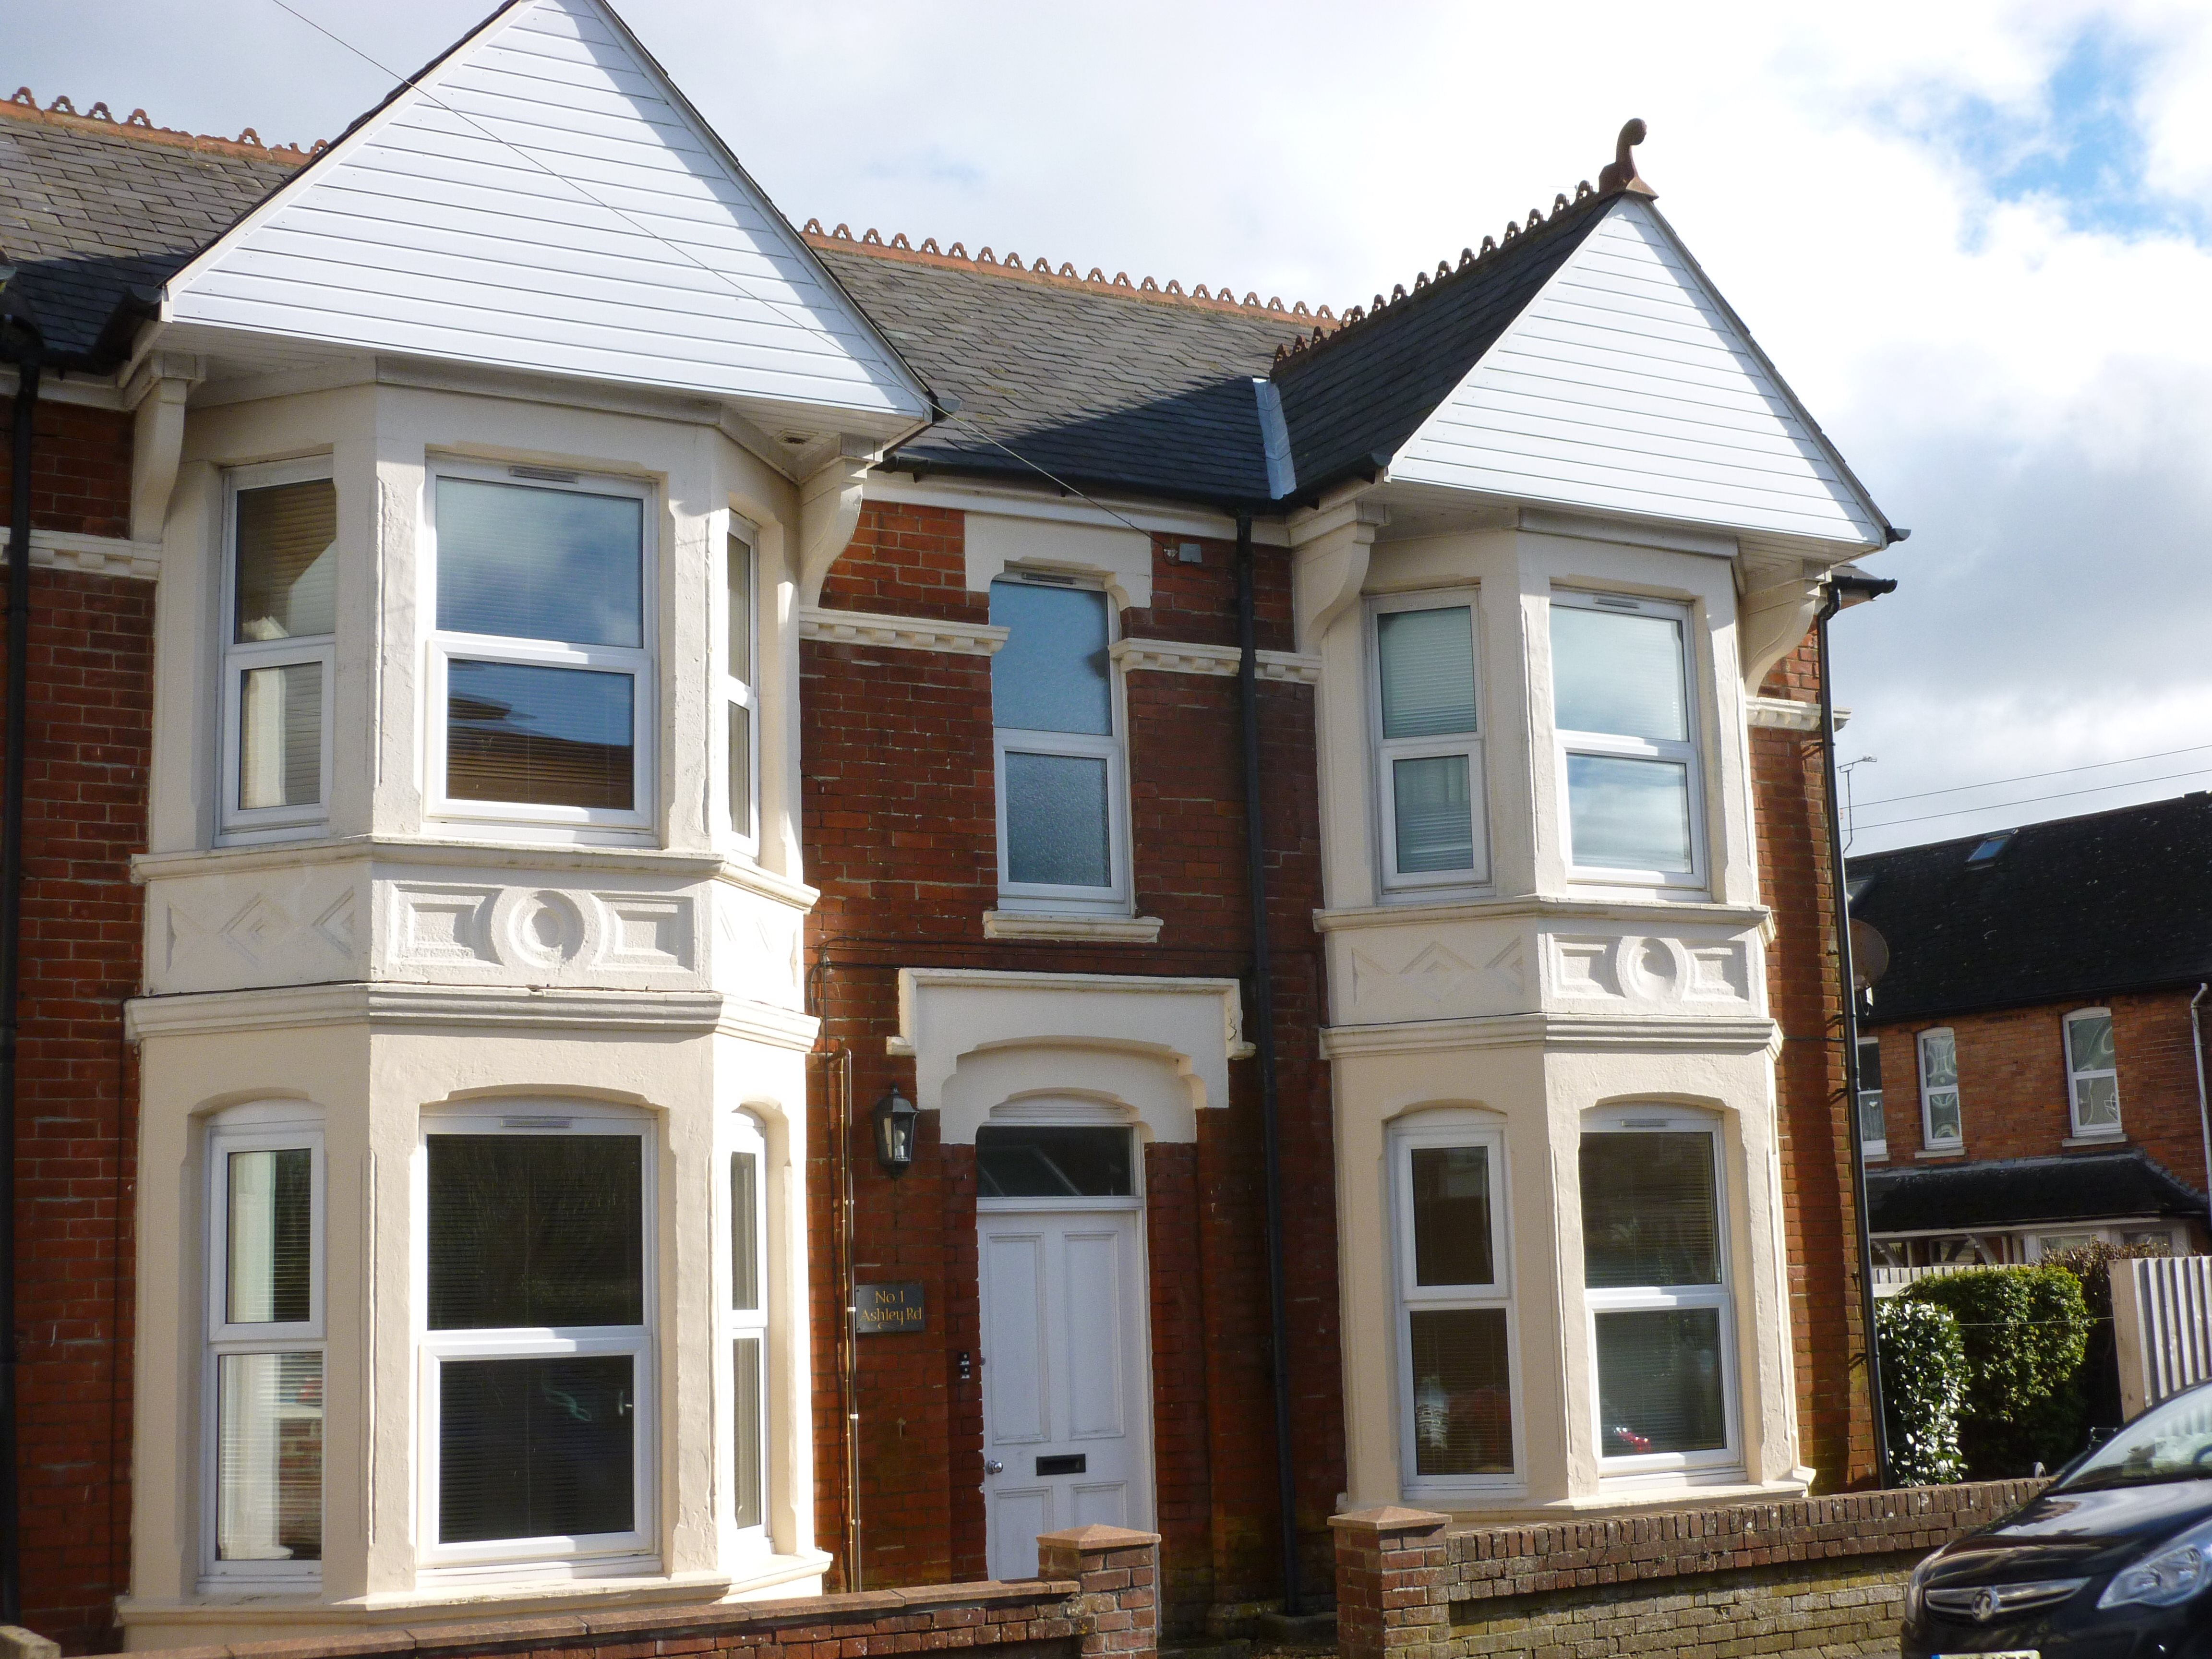 Ashley Road, Ground Floor Flat, Dorchester